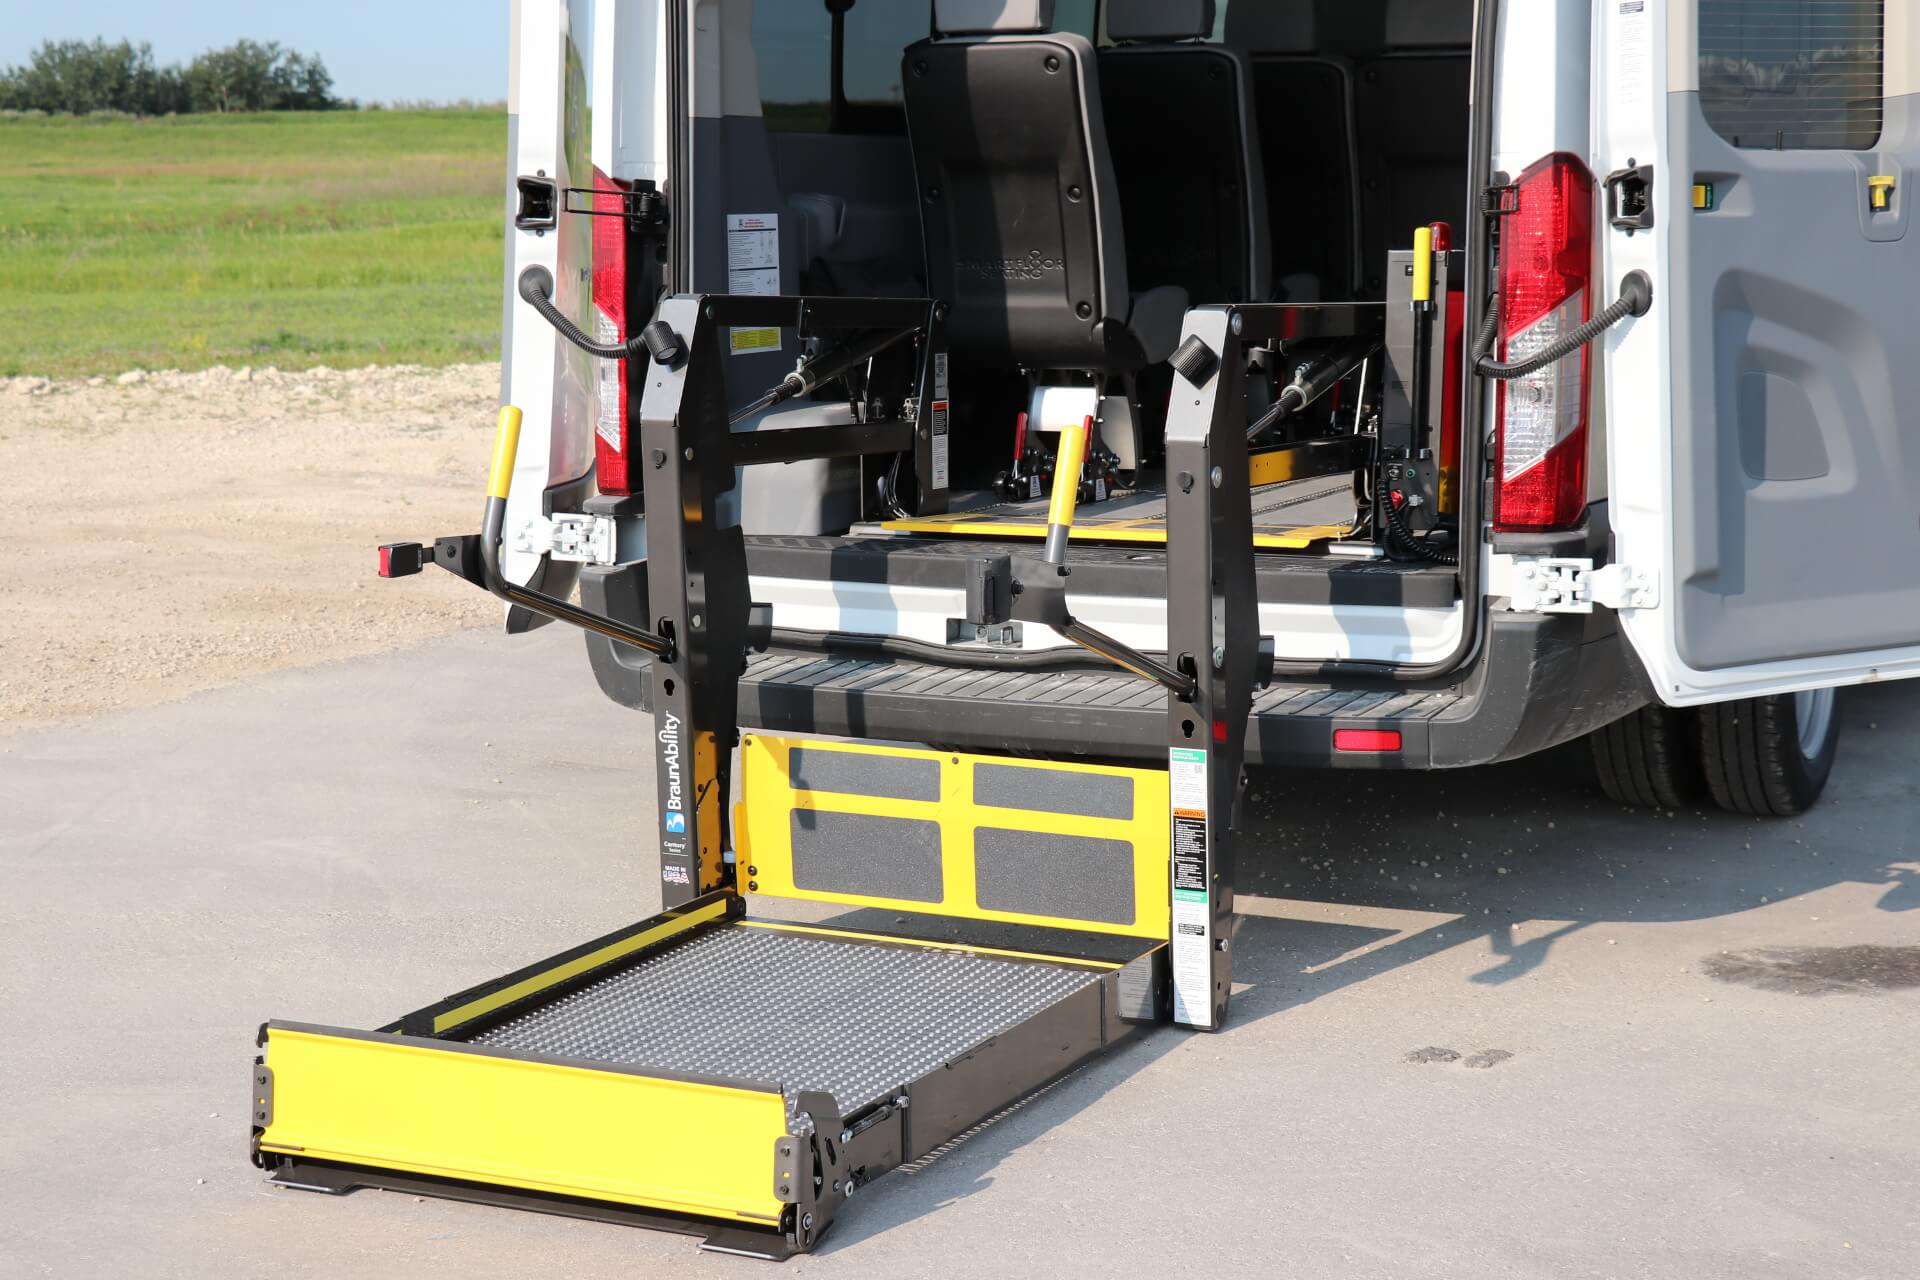 Ford Transit Passenger Van >> 4x4 Rear Lift Ford Transit For Wheelchair & Passenger Use| MoveMobility